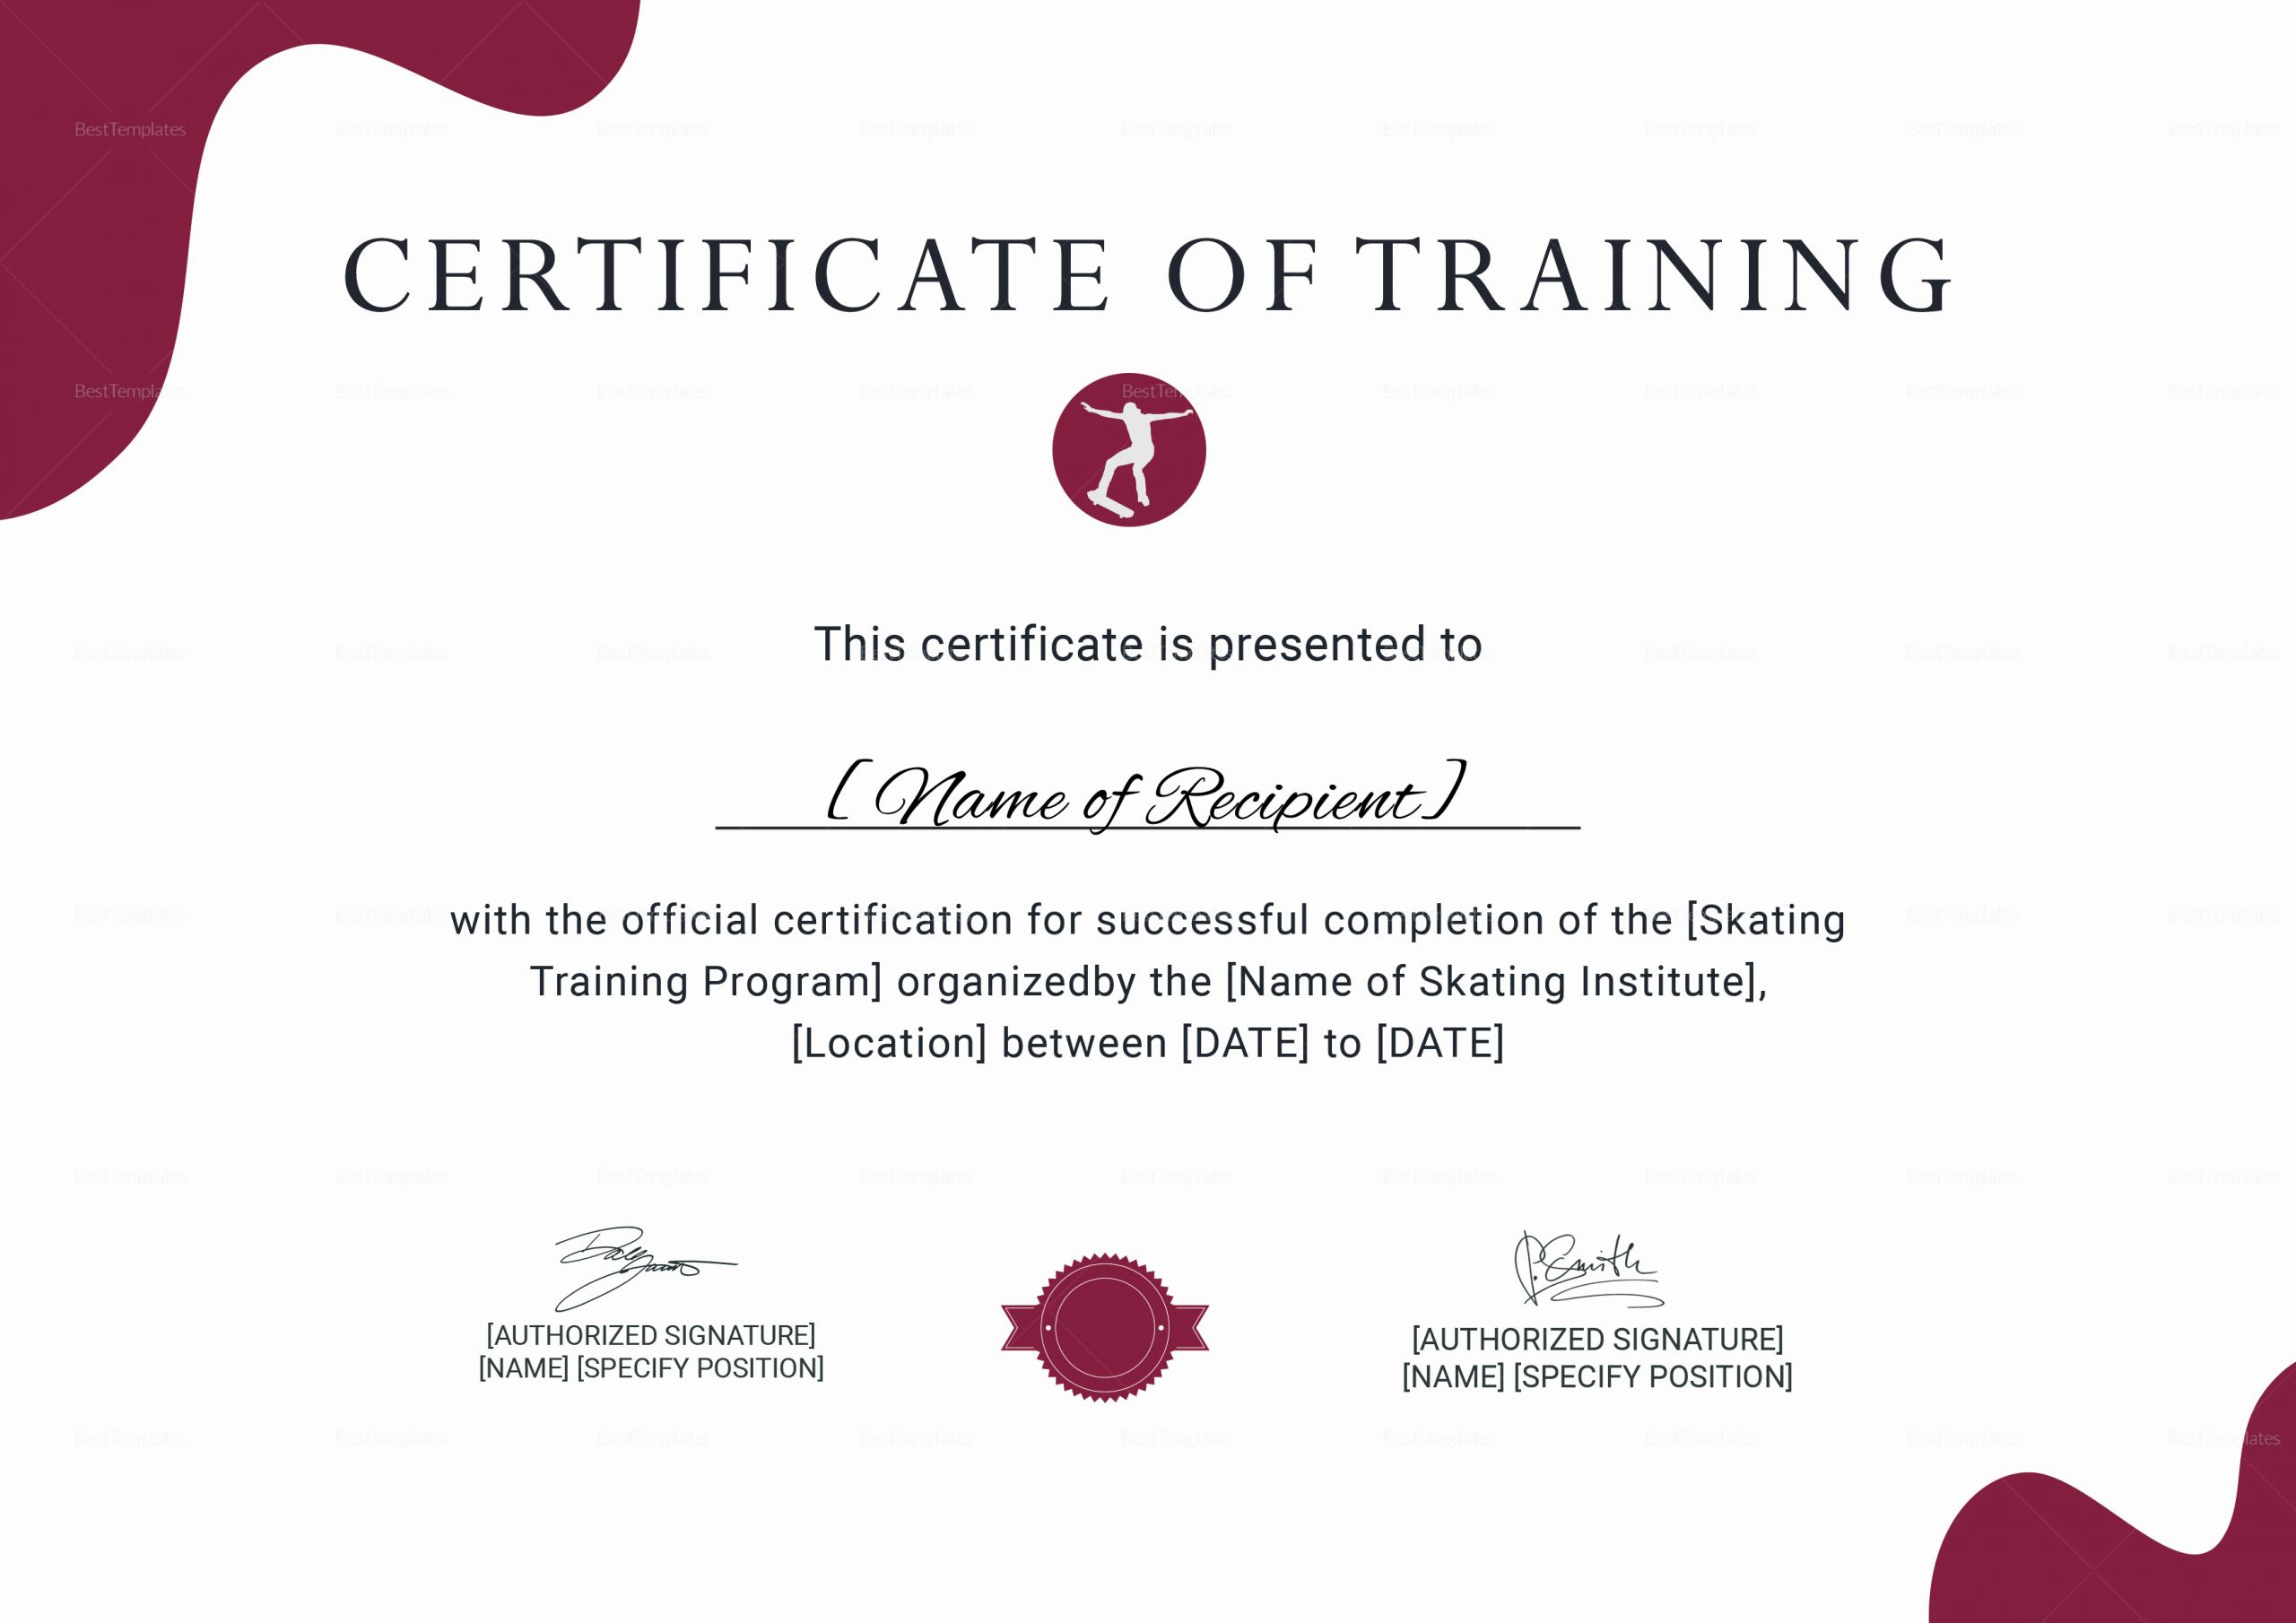 Training Certificate Template Free Download Beautiful Training Certificate for Skating Design Template In Psd Word